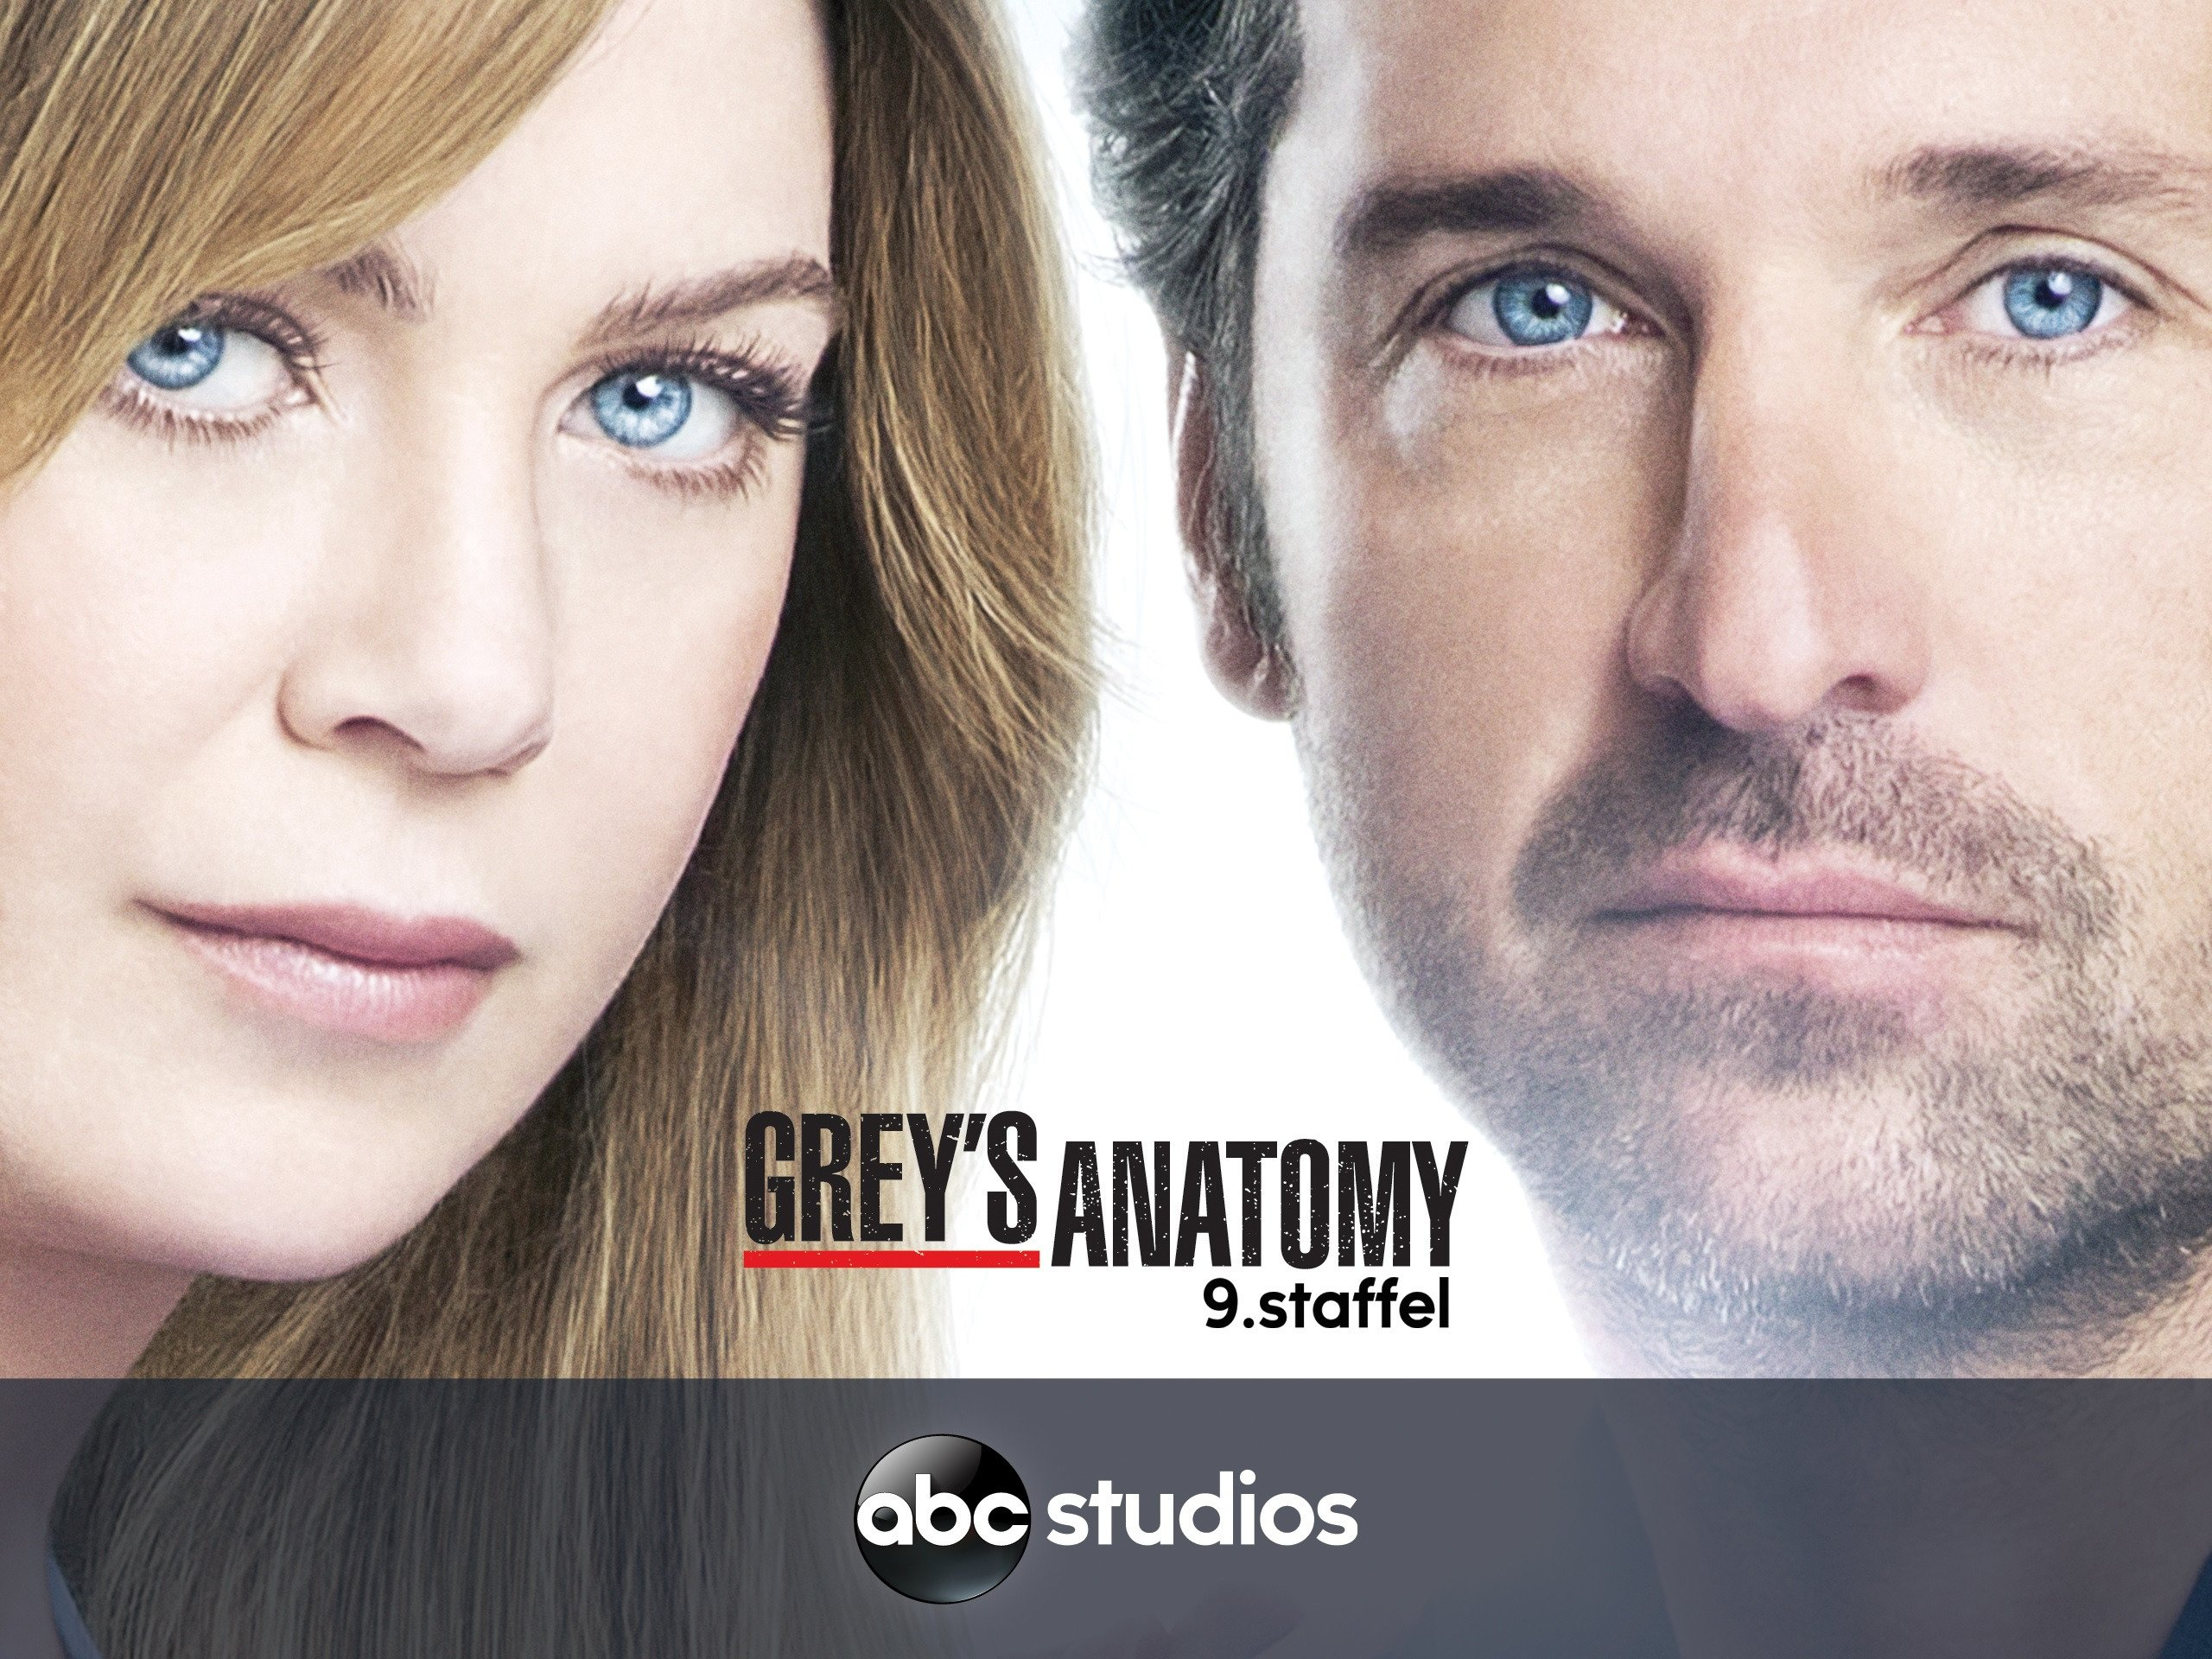 Amazon.de: Grey\'s Anatomy - Staffel 9 [dt./OV] ansehen | Prime Video